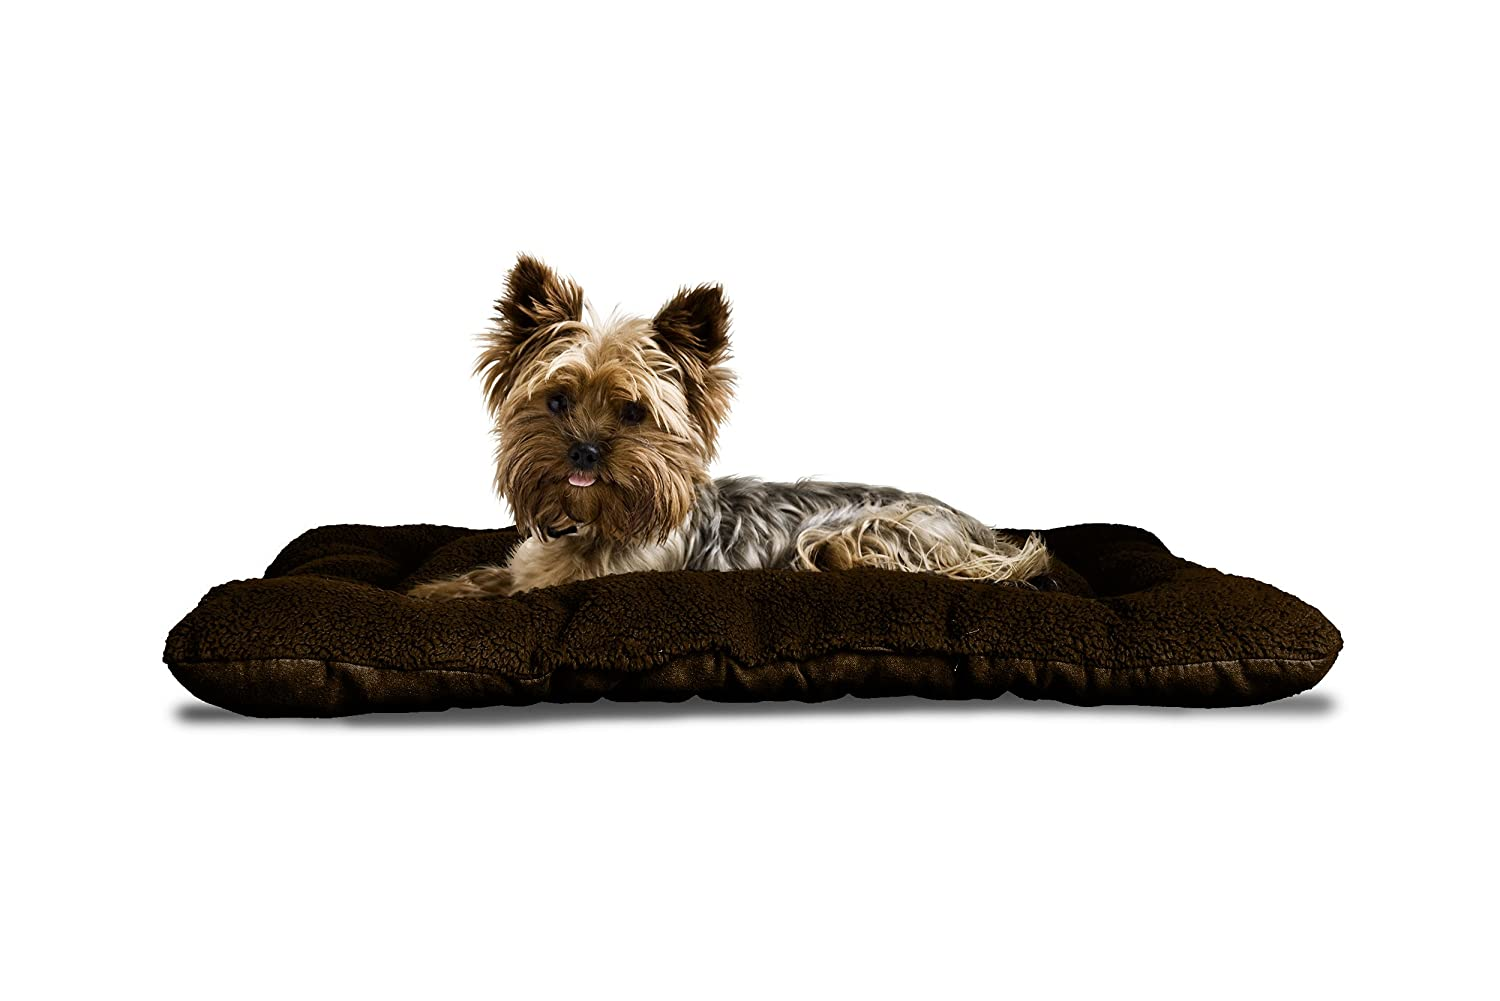 Terry Espresso 12\ Terry Espresso 12\ Fur Haven 37142081 Pet Reversible Terry and Suede Tufted Pillow Dog Bed, Terry Espresso, 12  x 18